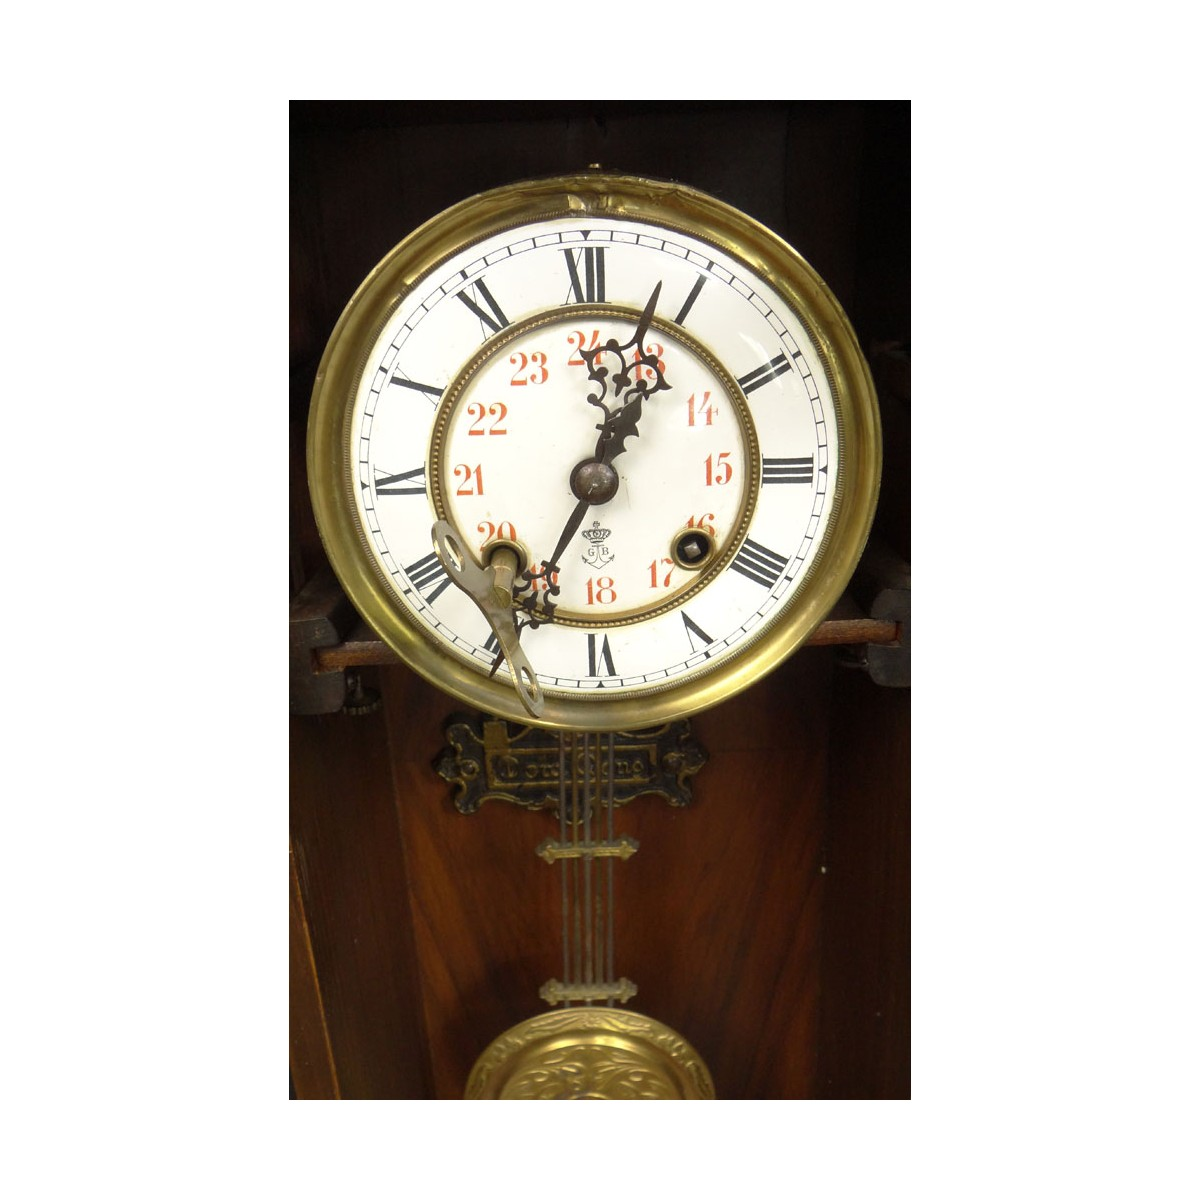 Antique Gustav Becker Regulator Wall Clock. Signed Porcelain Dial, in a Carved Figural Case with Pe